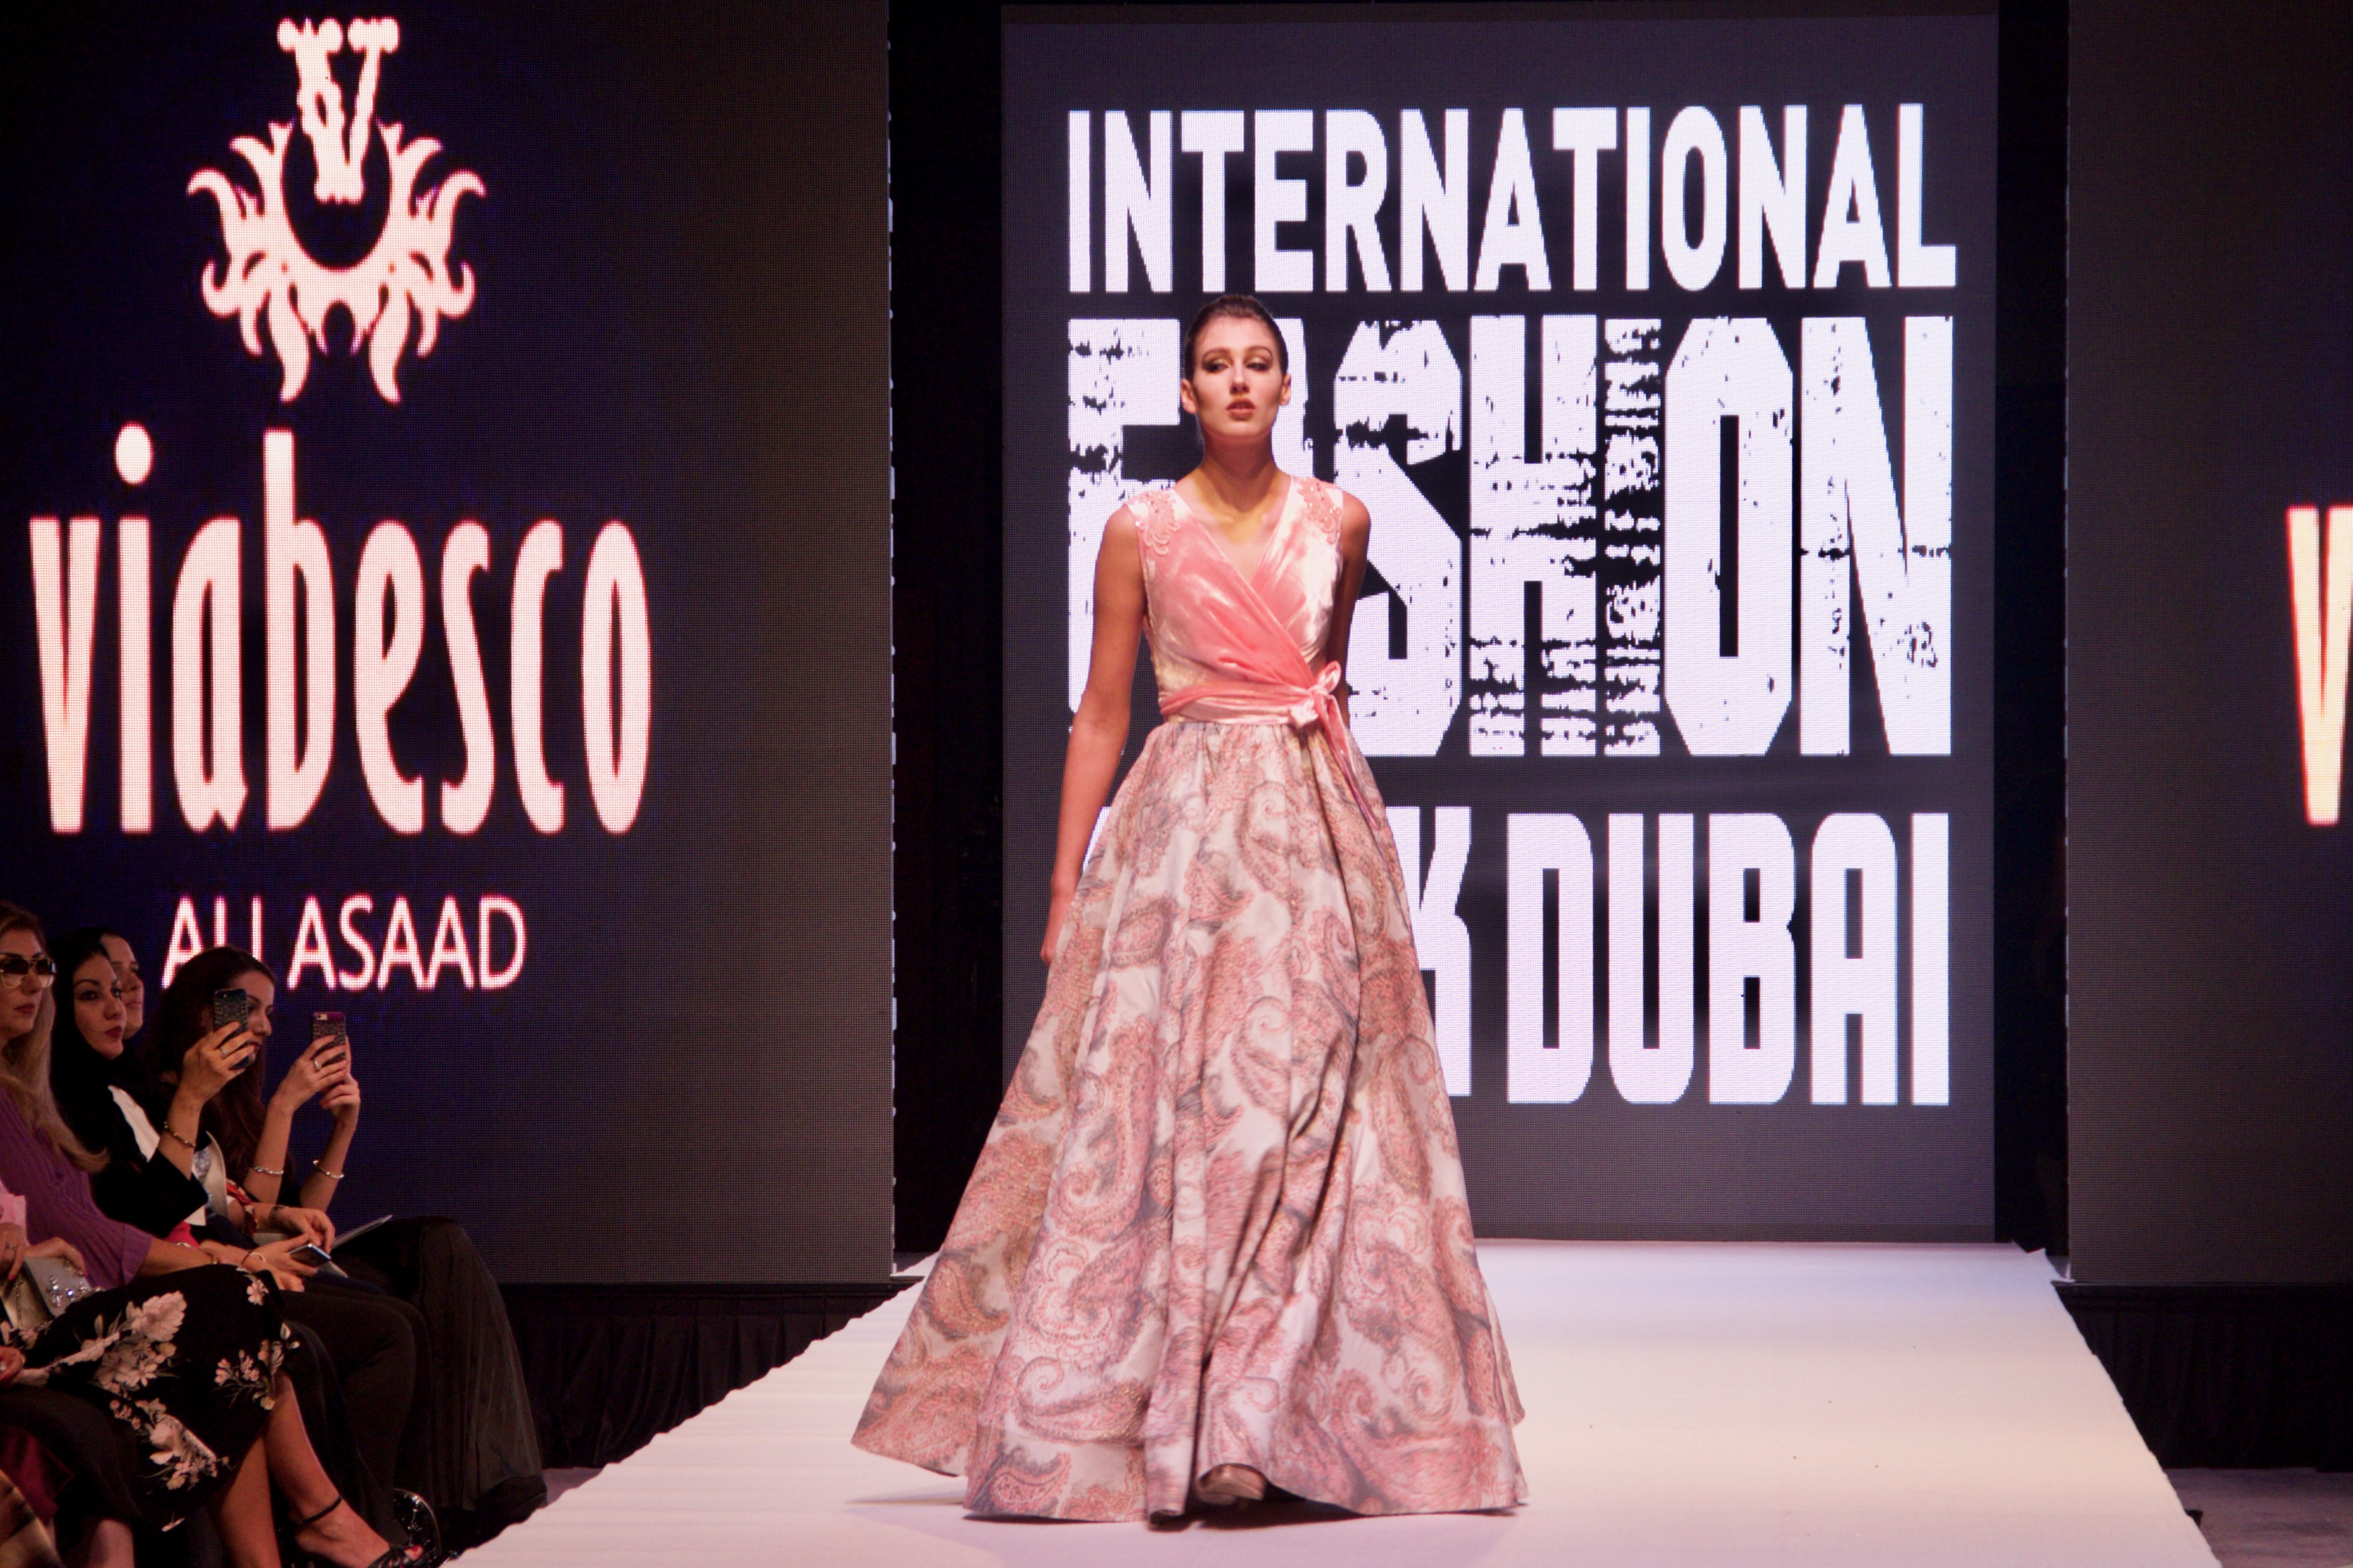 International Fashion Week Dubai 2017